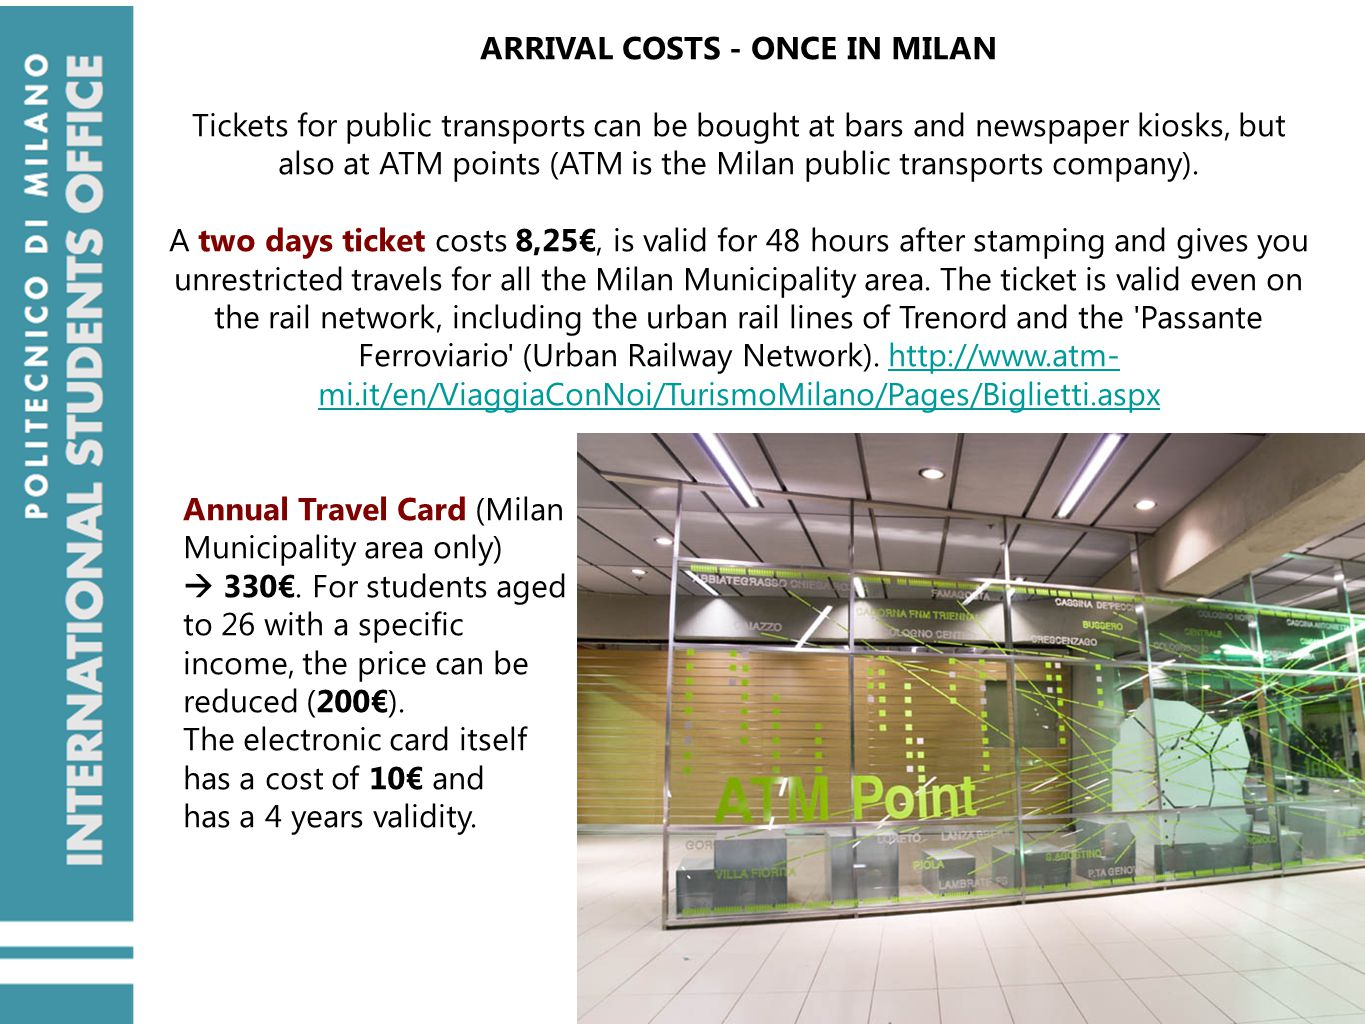 ARRIVAL COSTS - ONCE IN MILAN Tickets for public transports can be bought at bars and newspaper kiosks, but also at ATM points (ATM is the Milan public transports company).